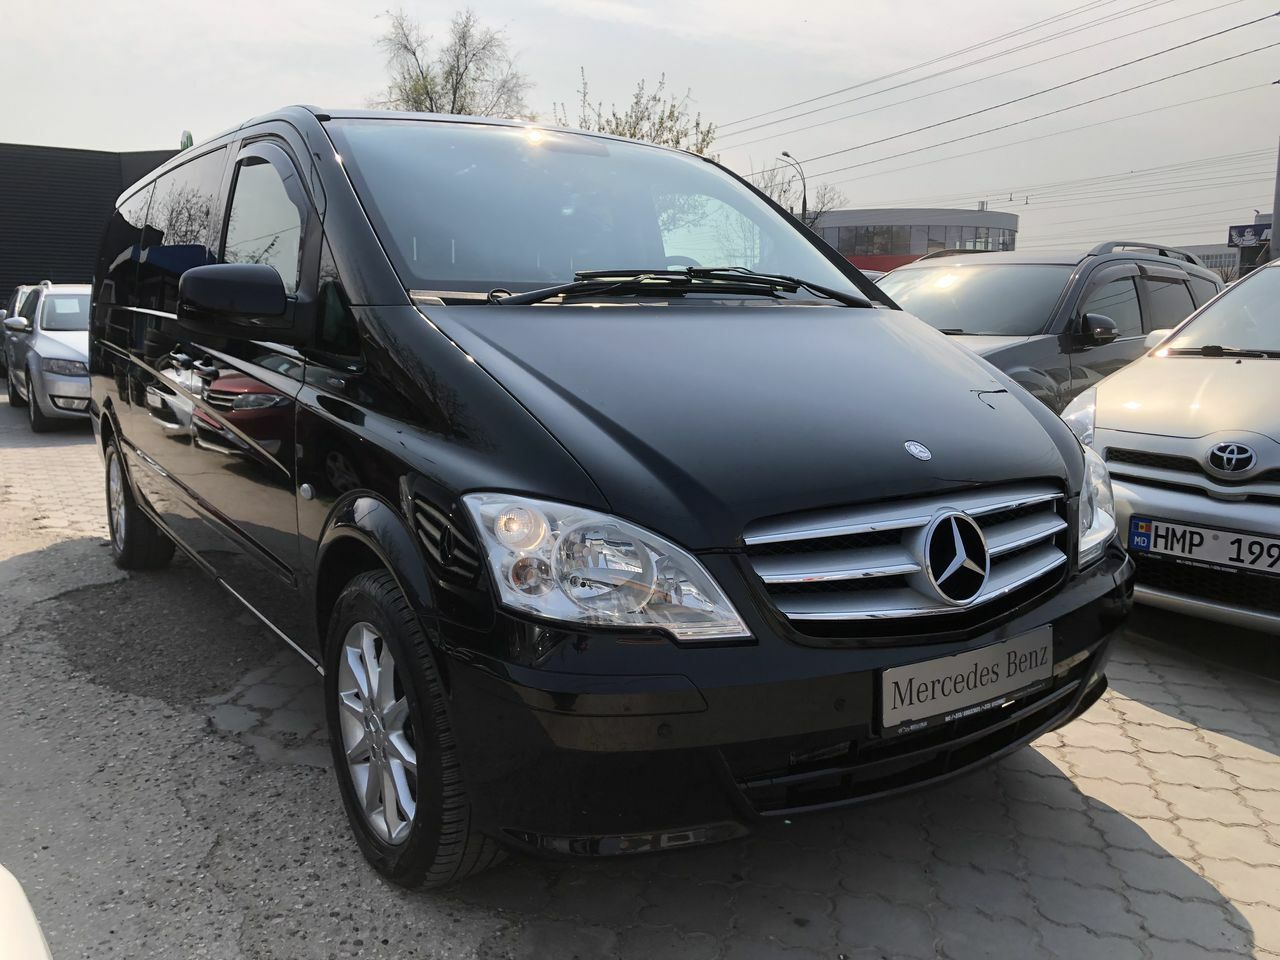 "<span style=""font-weight: bold;"">mercedes vito</span>"